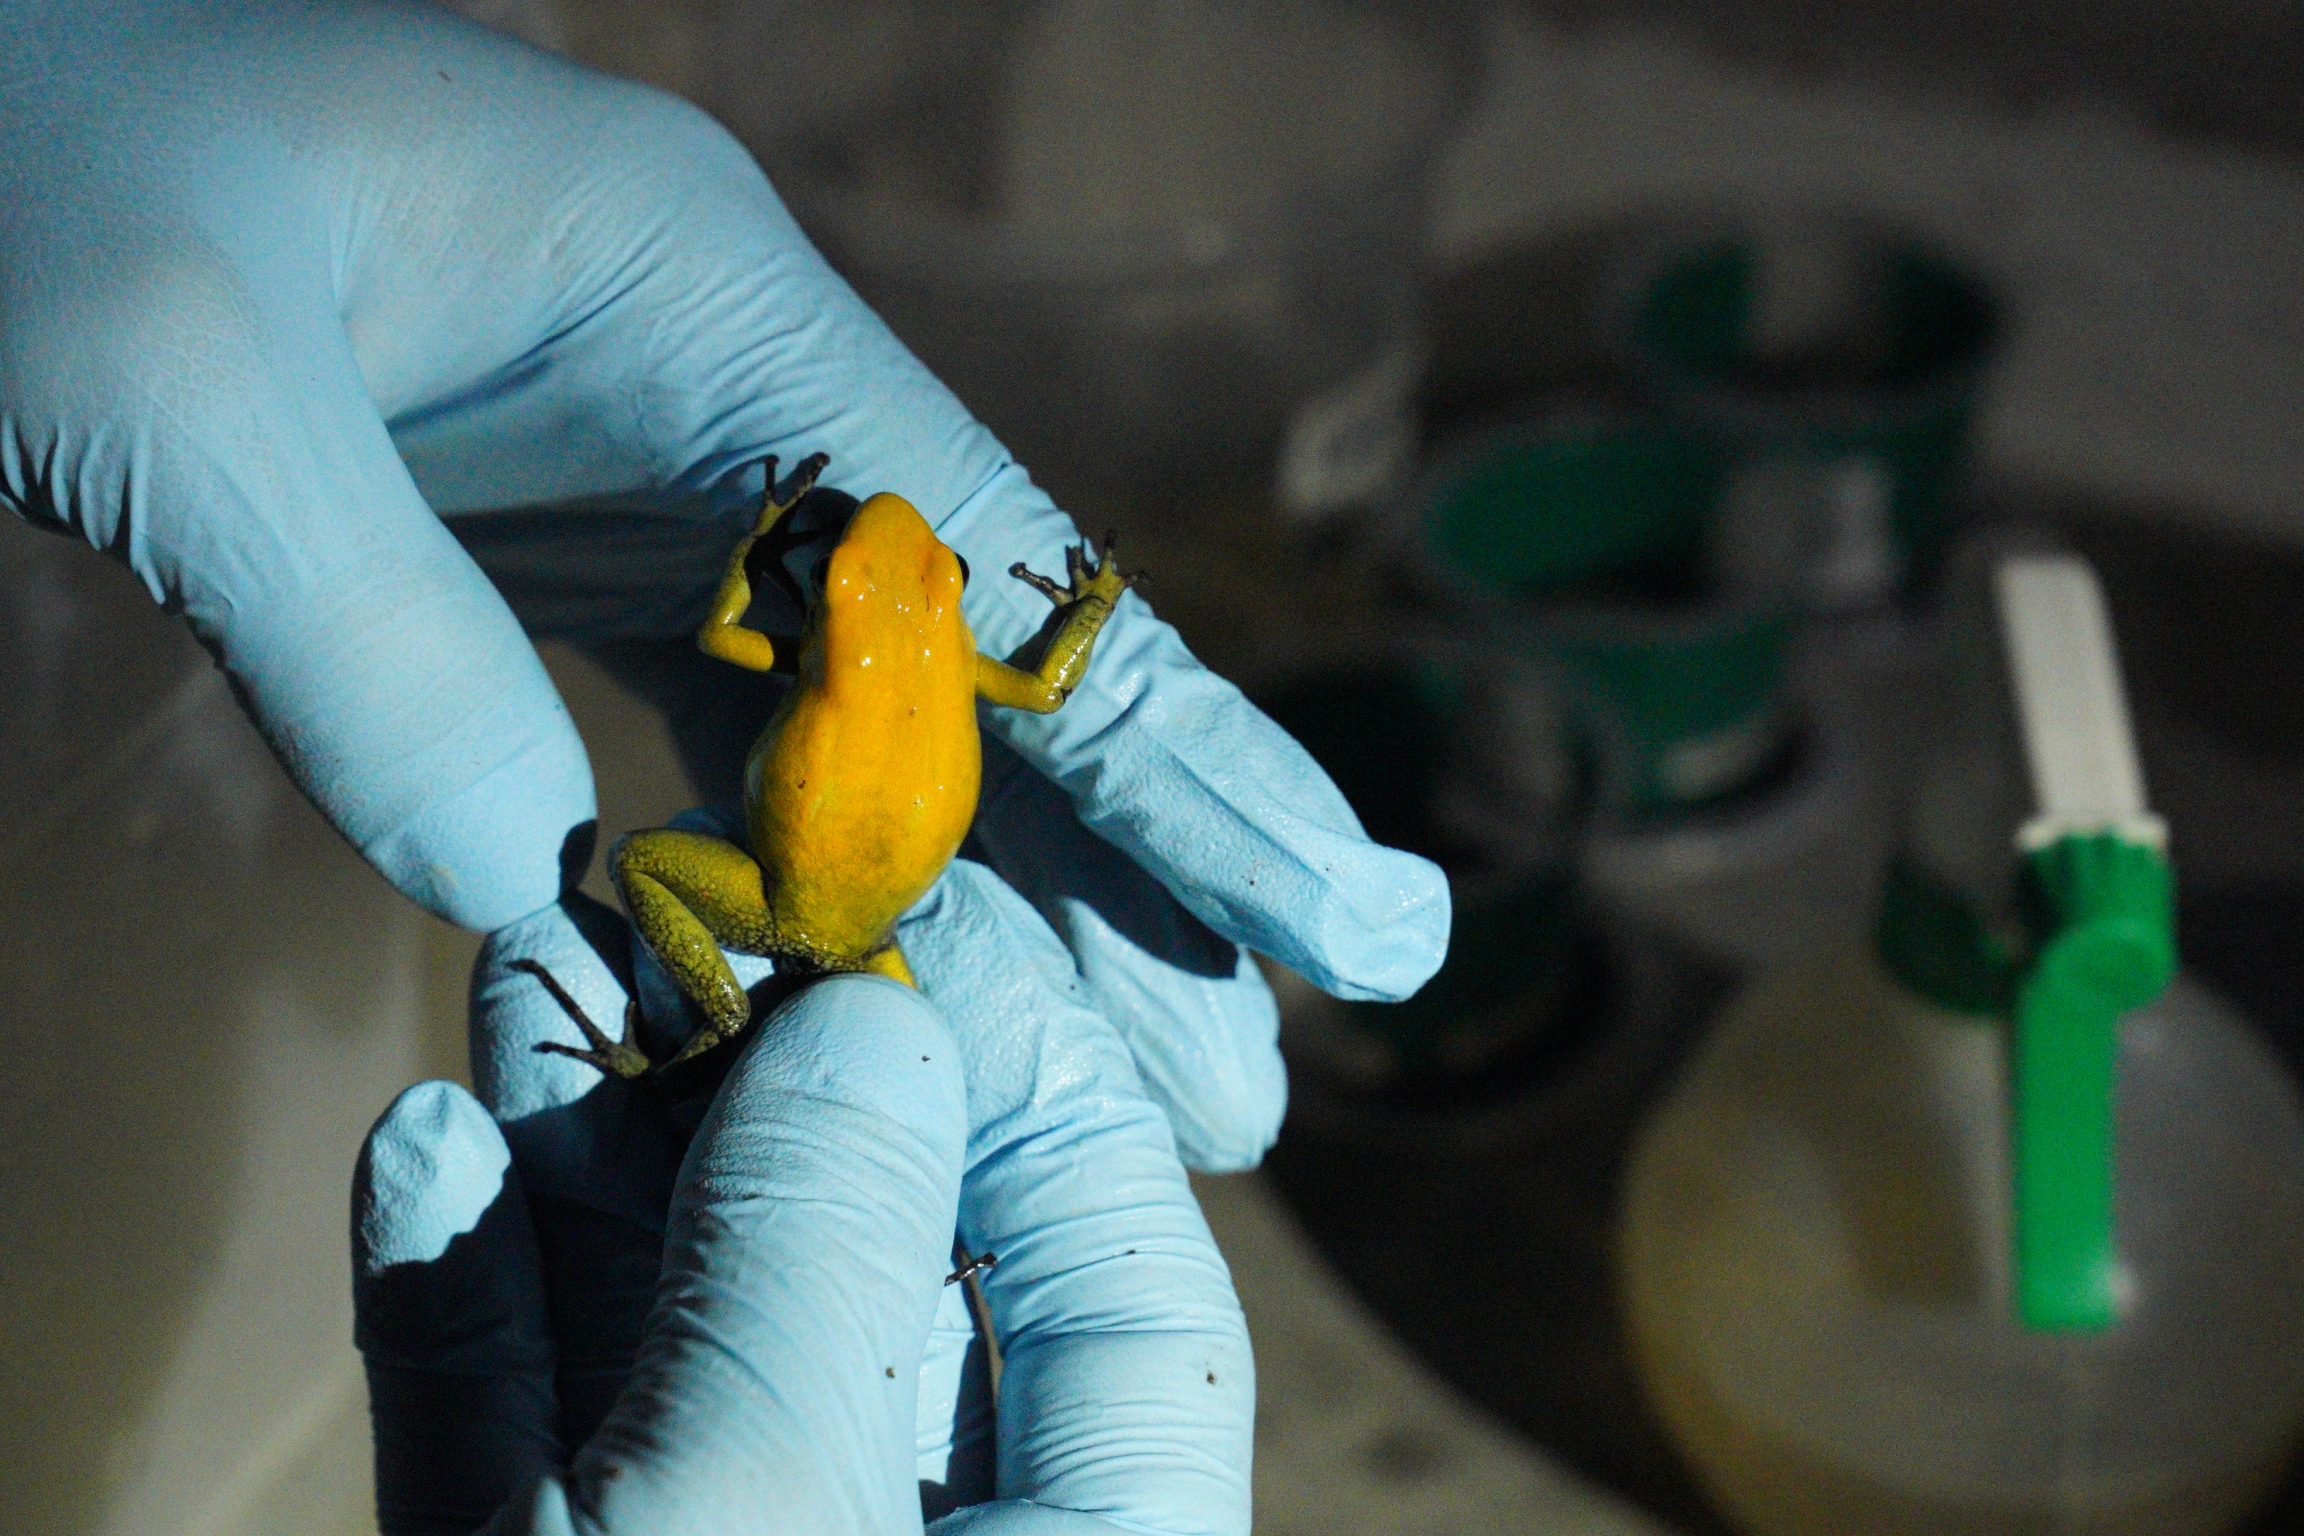 Ivan Ramos inspects a Phyllobates bicolor that is about to be sent to a collector in Europe.